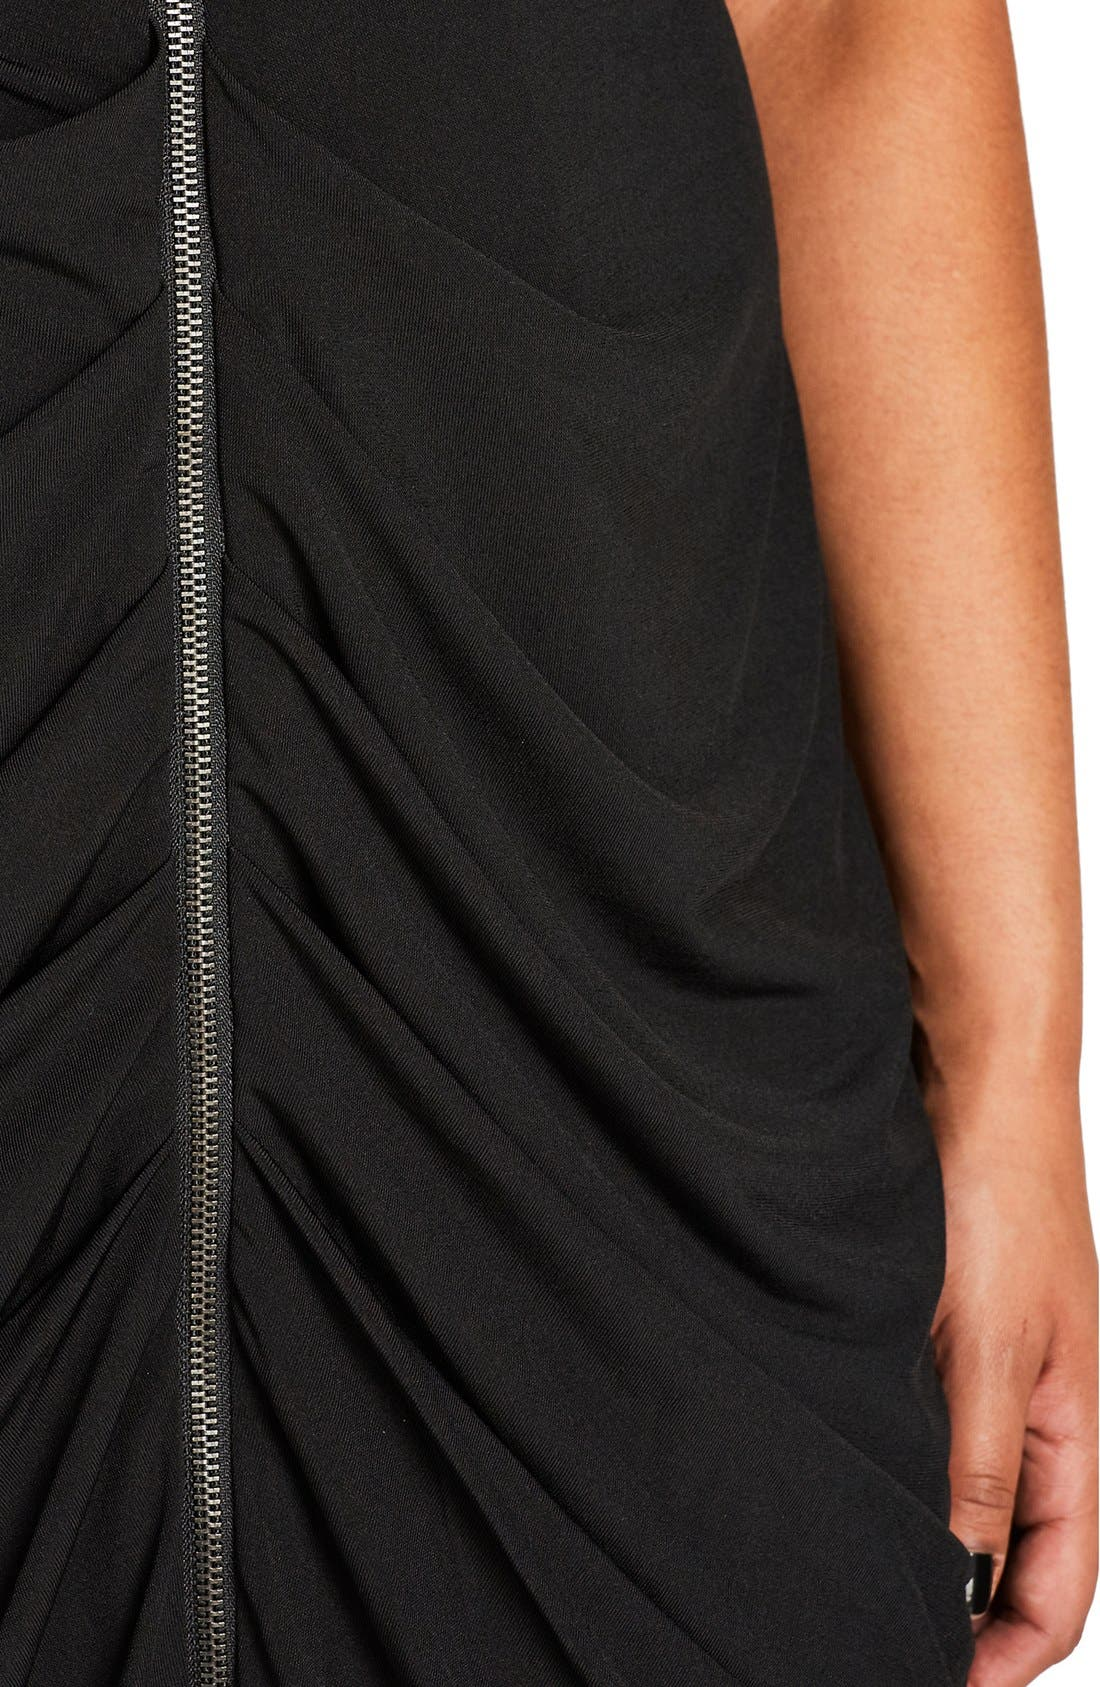 Sleeveless Ruched Zip Front Dress,                             Alternate thumbnail 3, color,                             Black